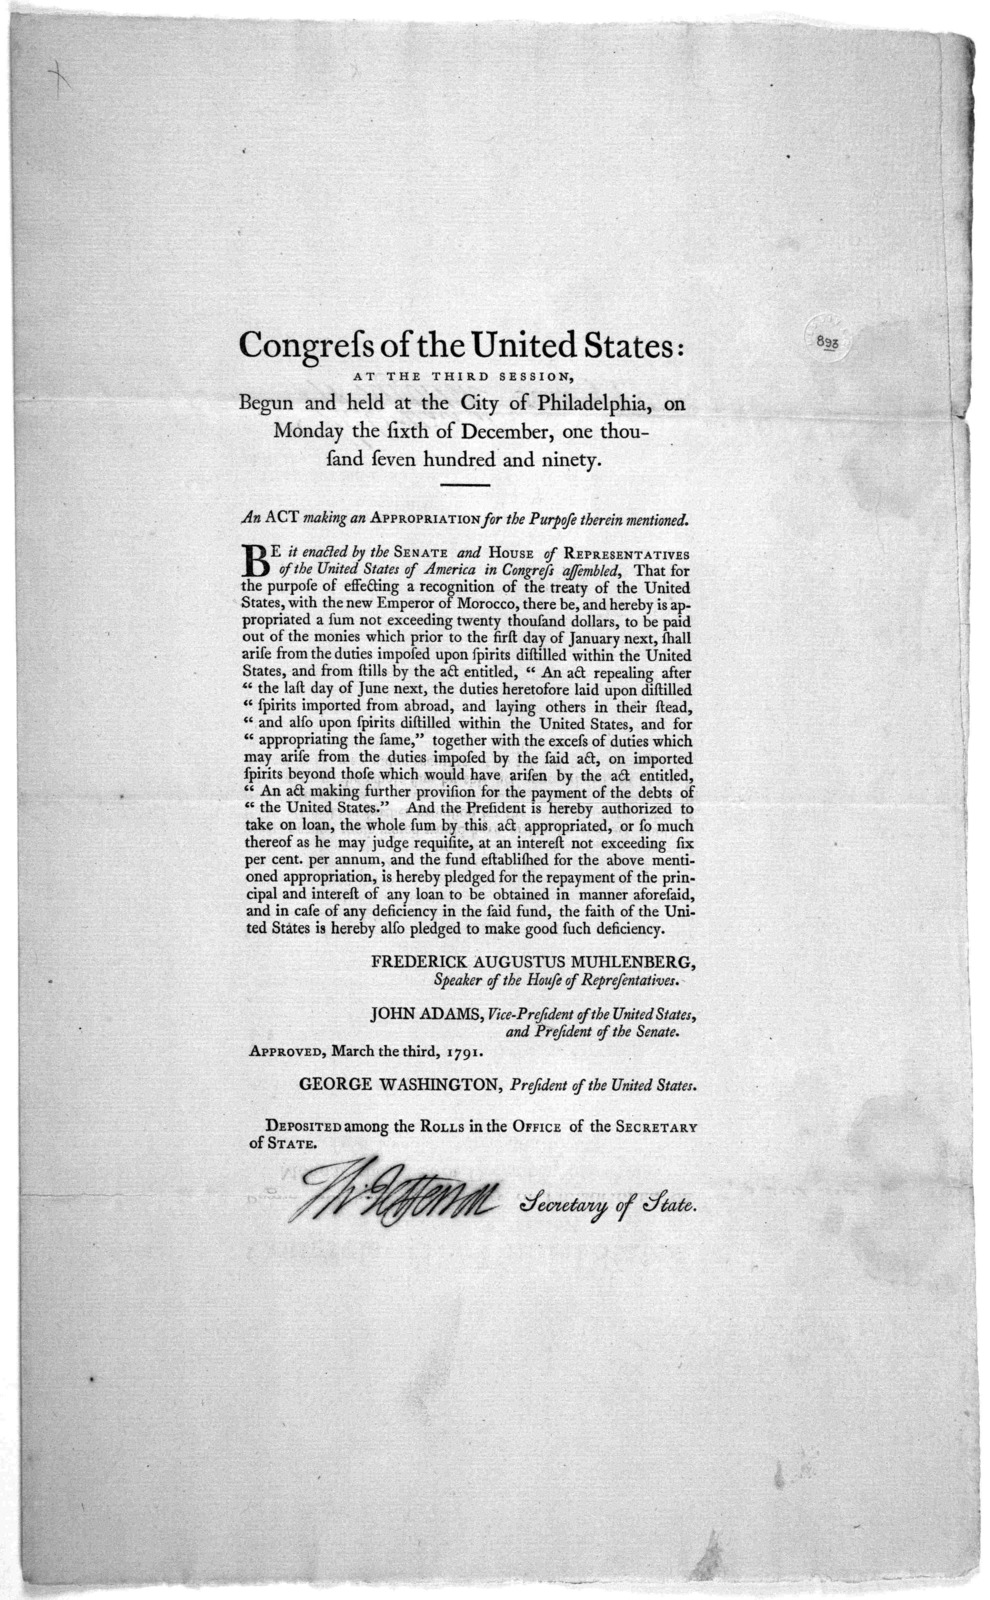 Congress of the United States: at the third session, begun and held at the City of Philadelphia, on Monday the sixth of December, one thousand seven hundred and ninety. An act making an appropriation for the purposes therein mentioned [effecting